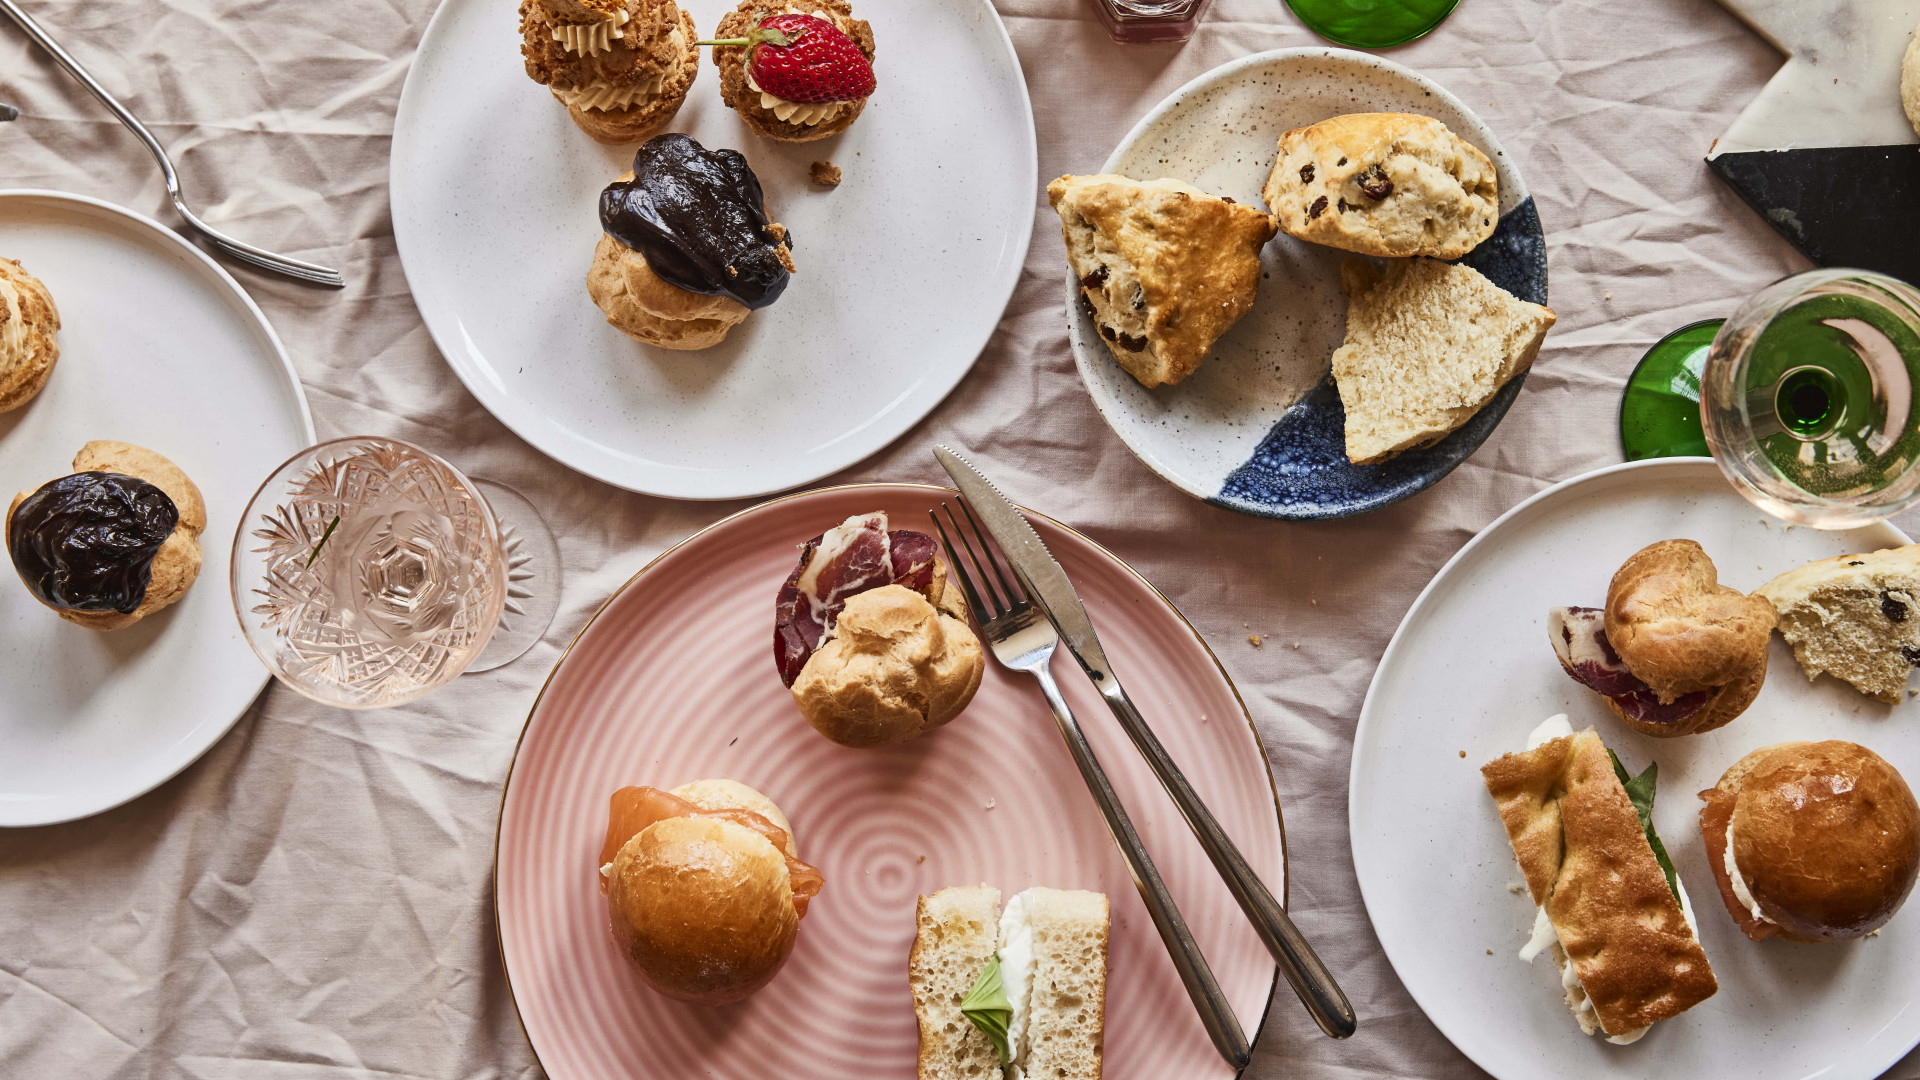 This is an image of The Proof's afternoon tea